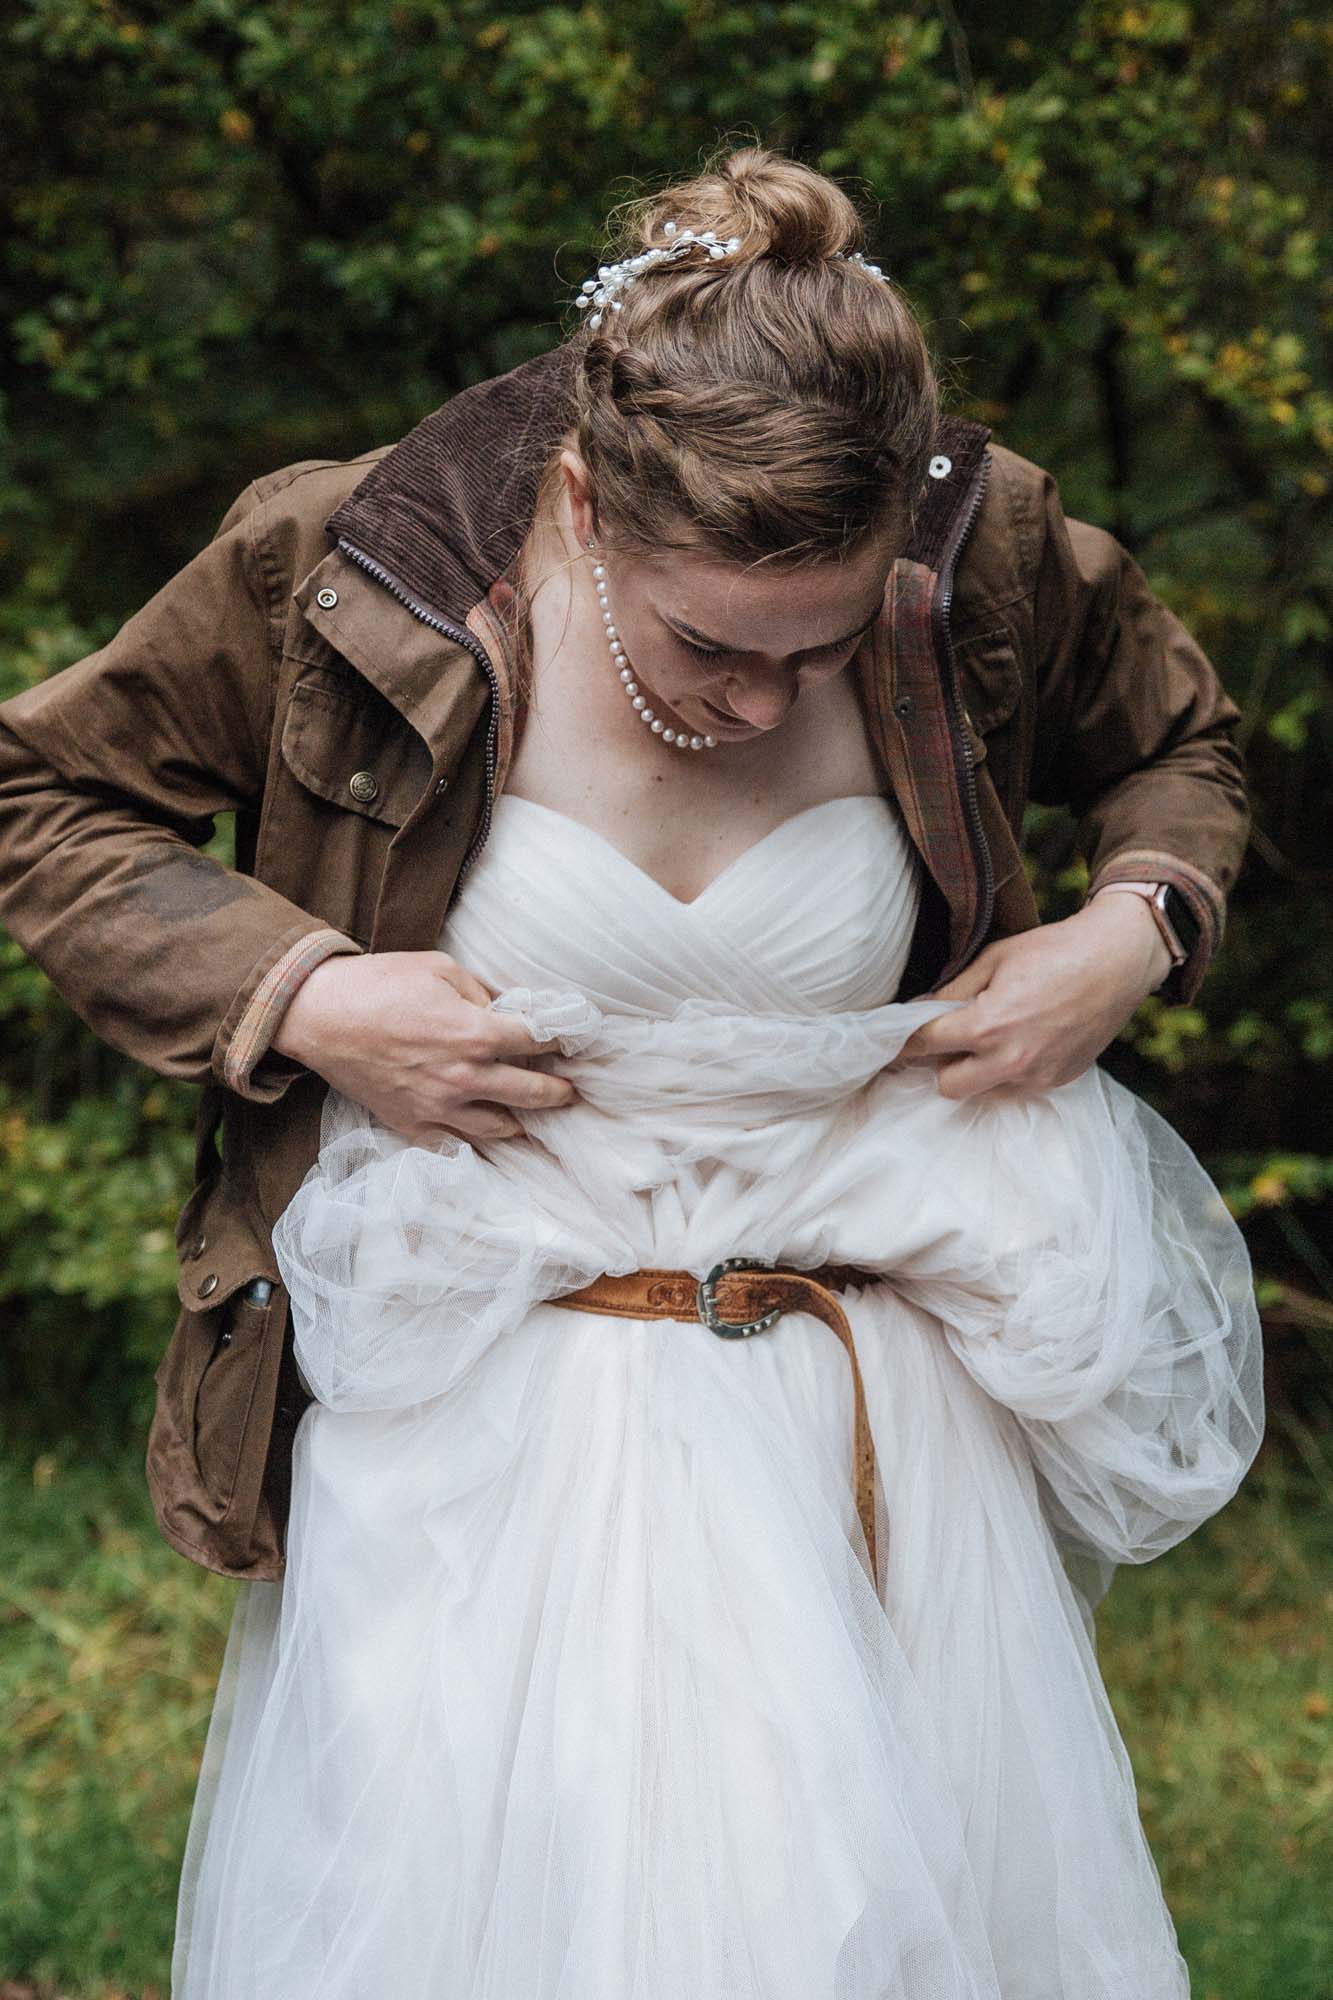 How to hike in a Wedding Dress - use belt to tie your dress round your waist